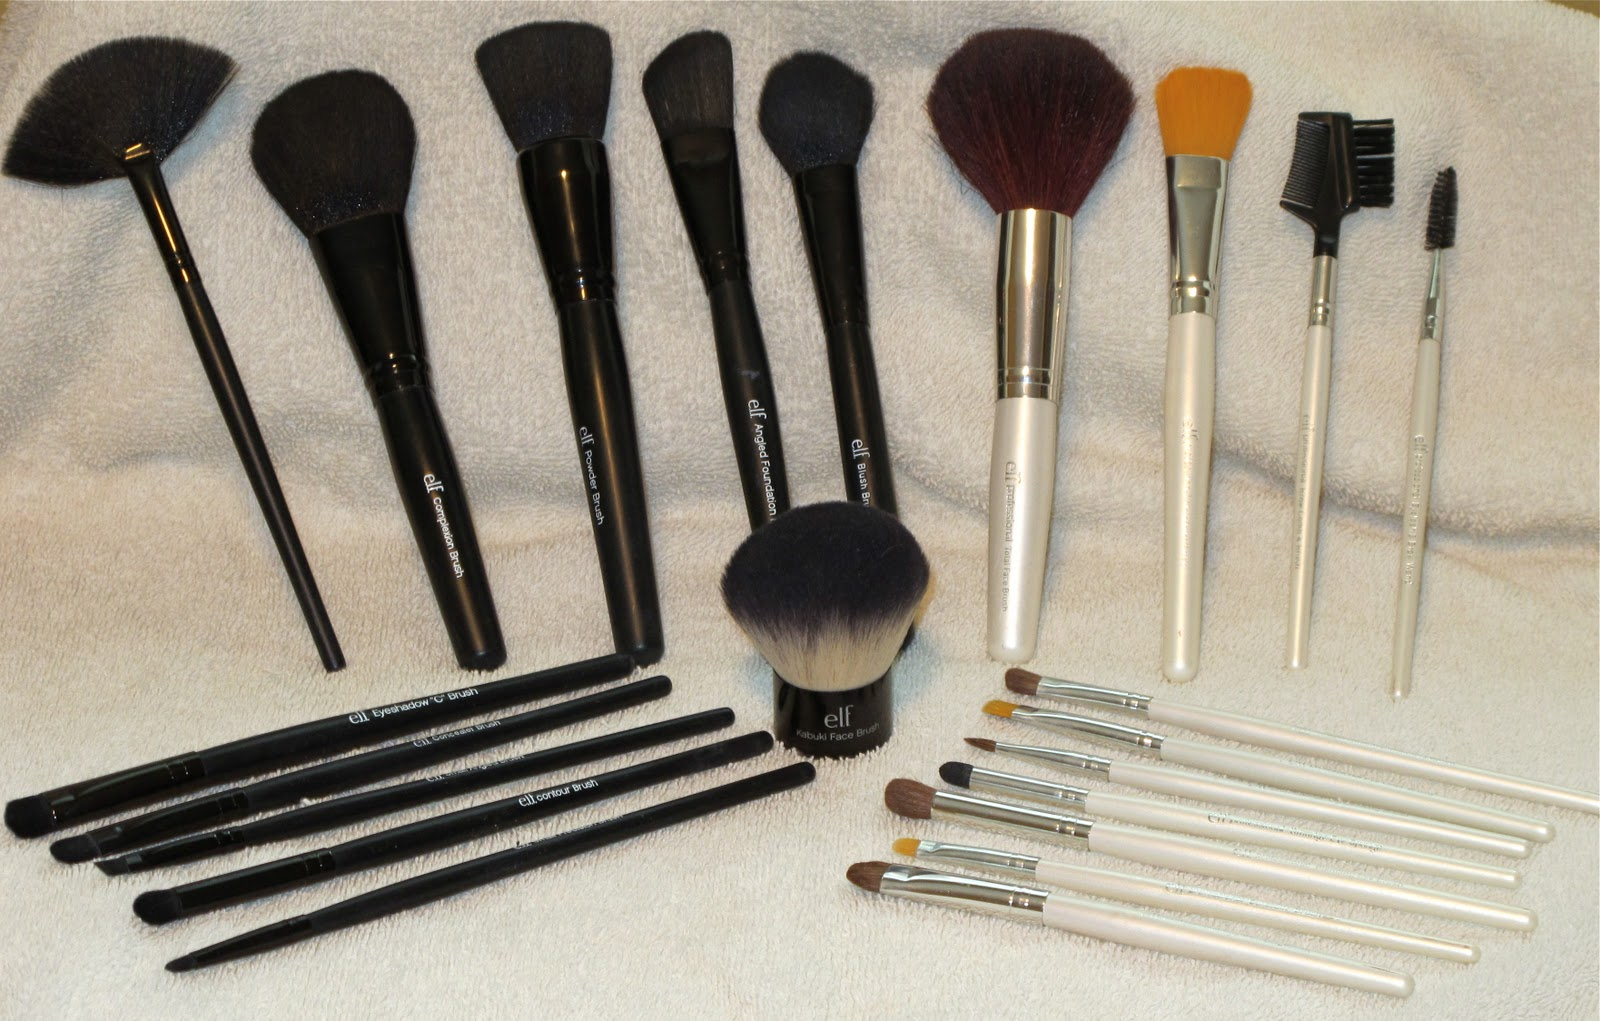 Pointed Powder Brush by e.l.f. #20